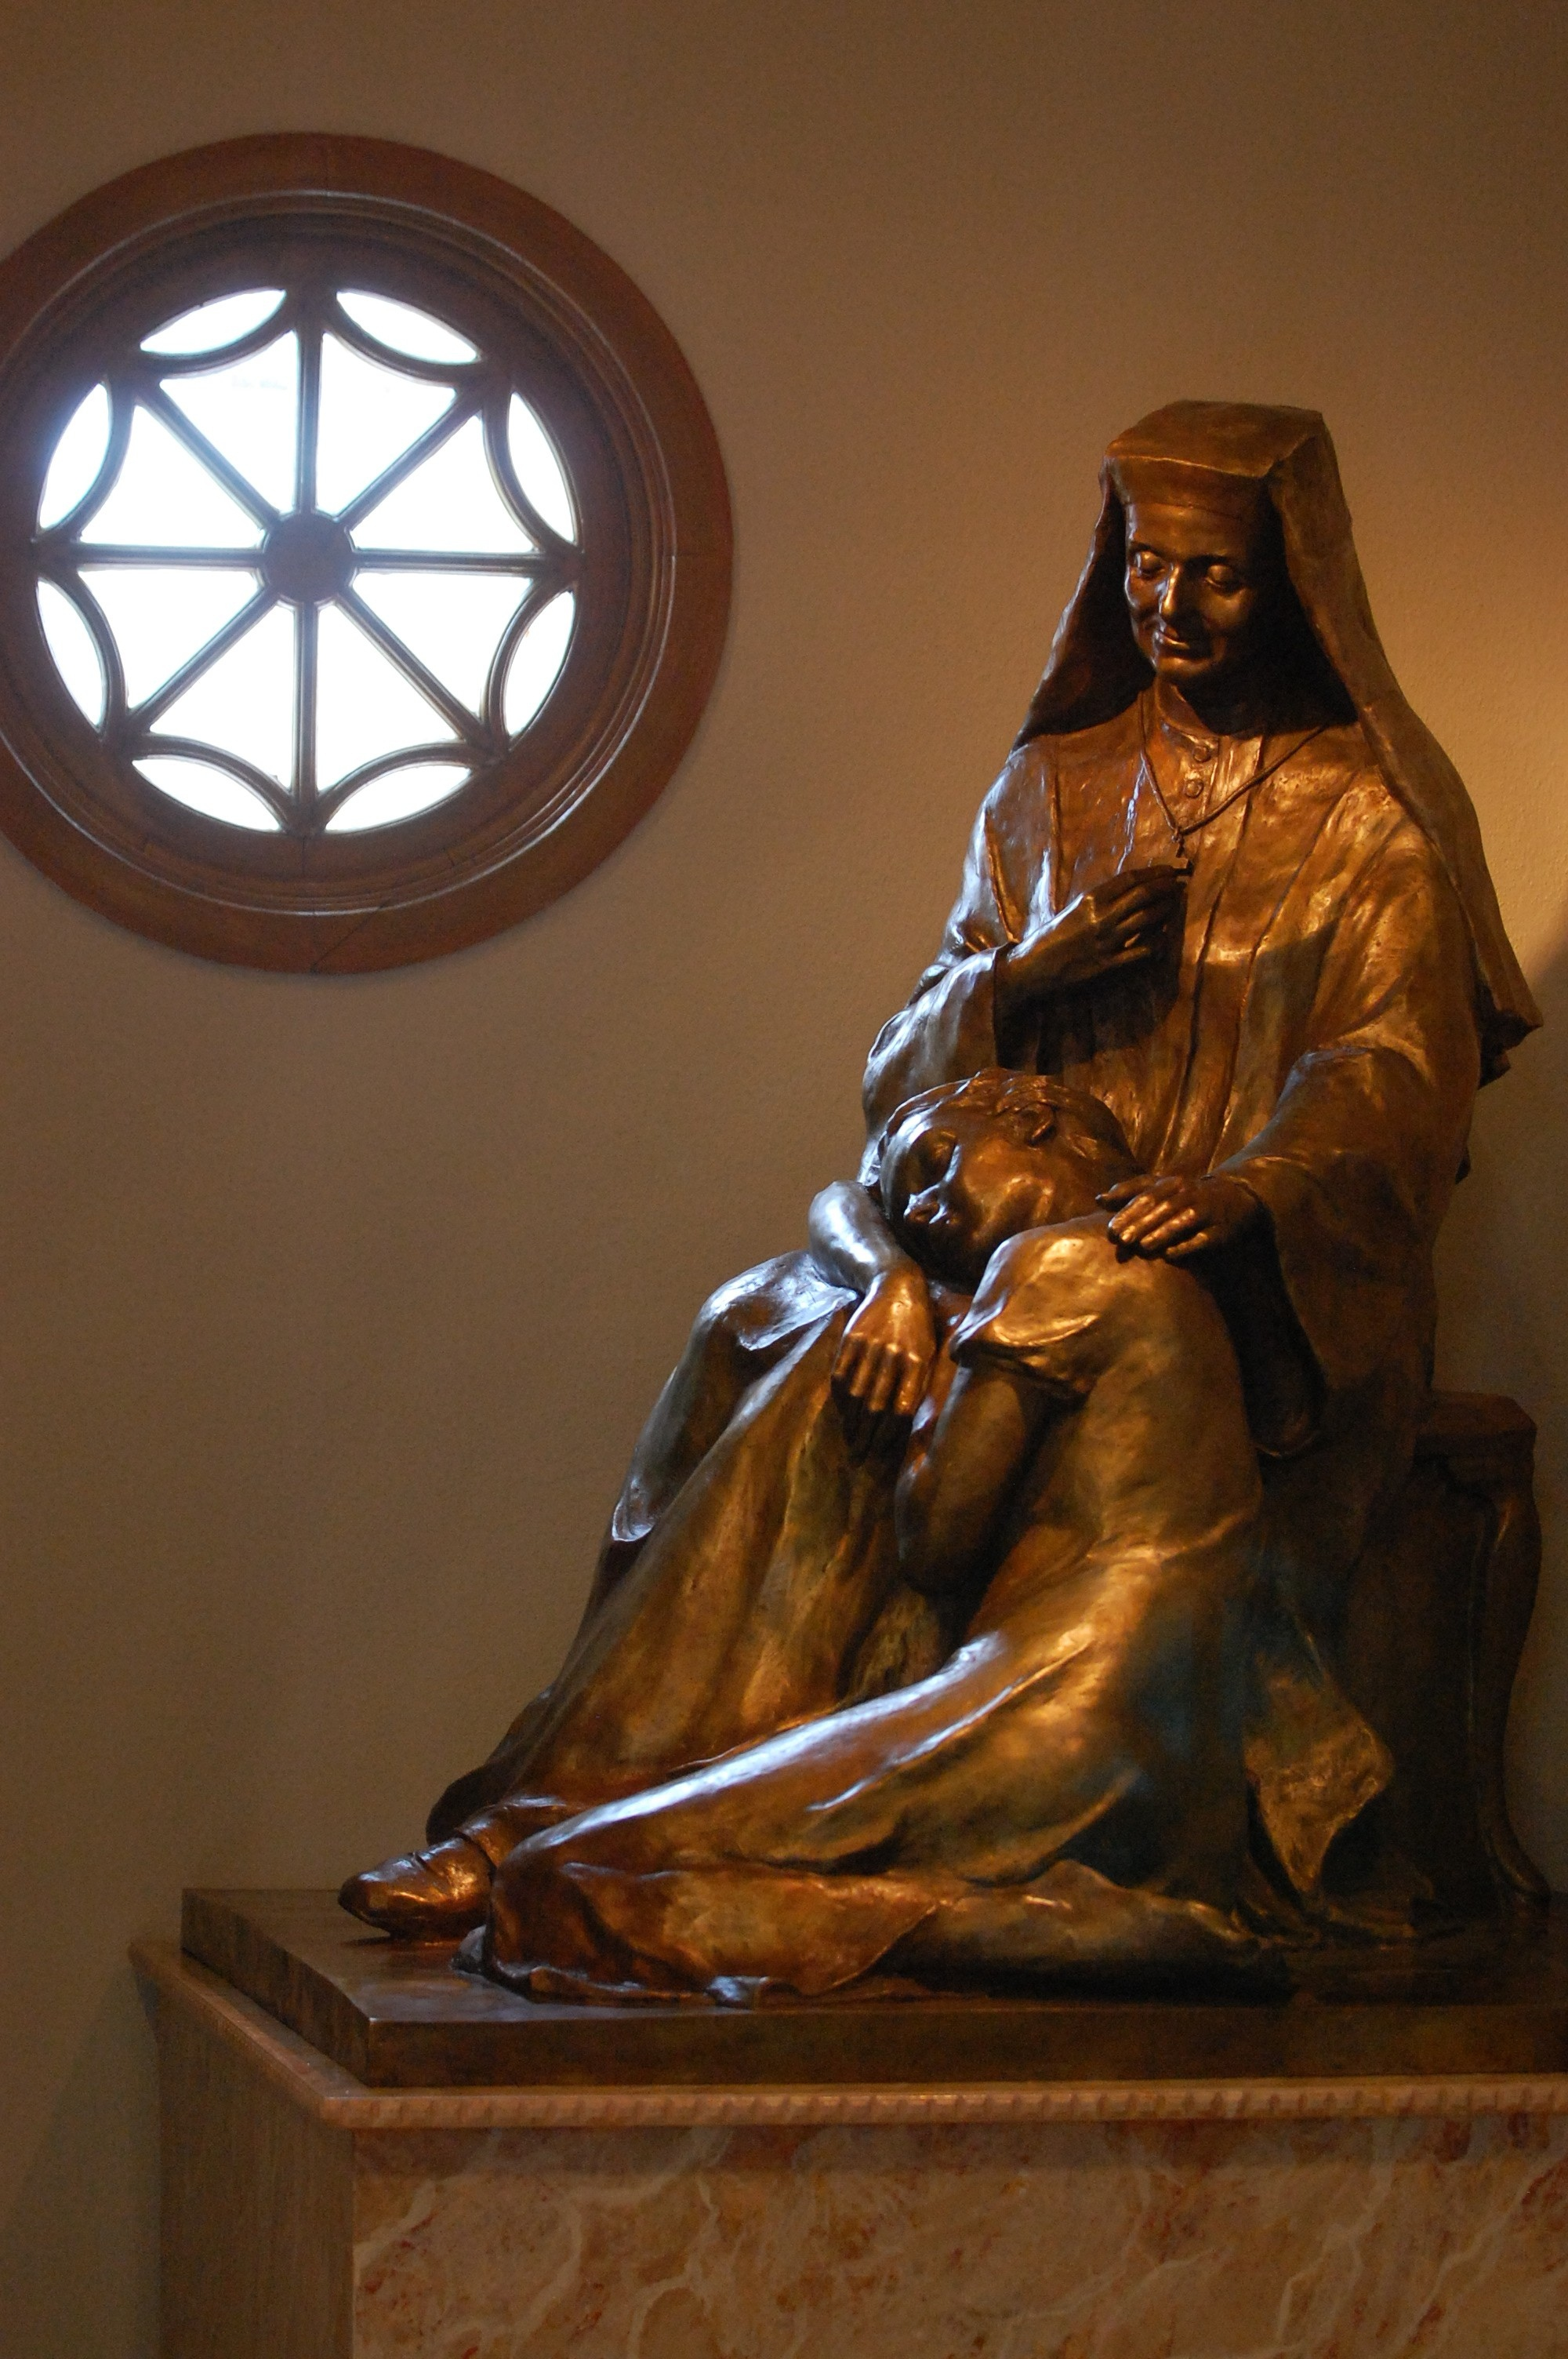 Statue of St. Leonie Aviat